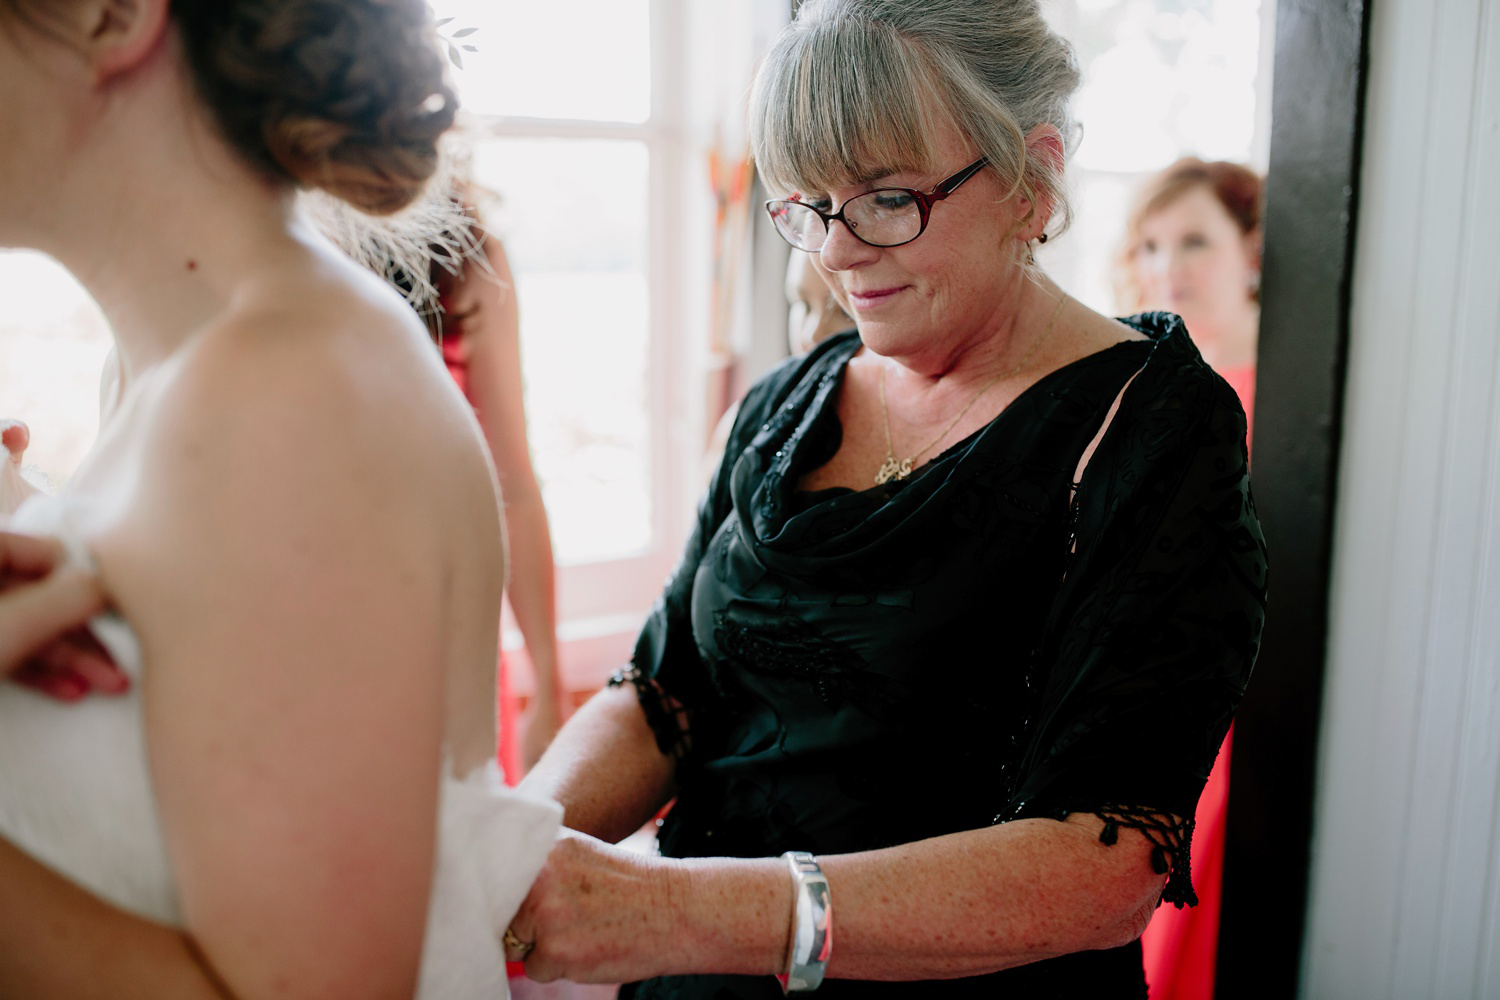 mother of the bride zipping up dress